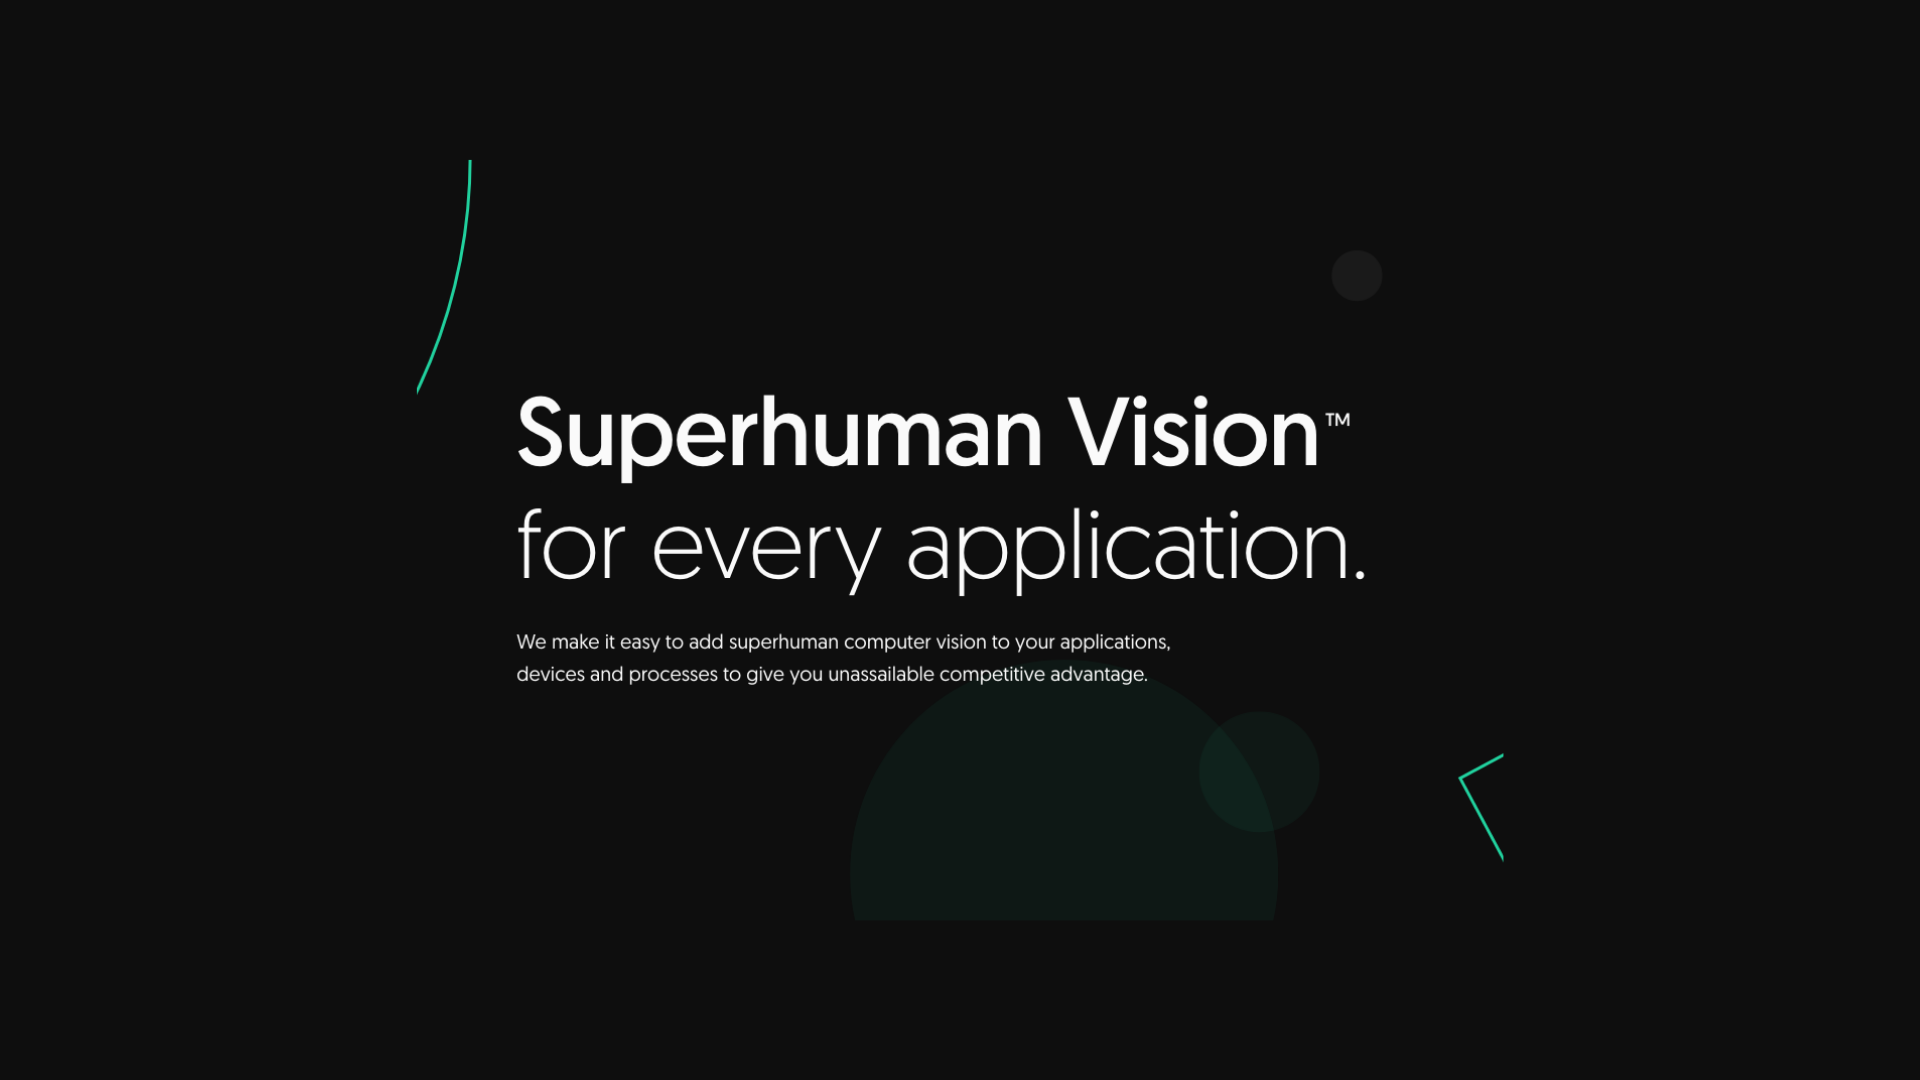 A New Generation of Computer Vision Is Here: Meet Superhuman Vision™